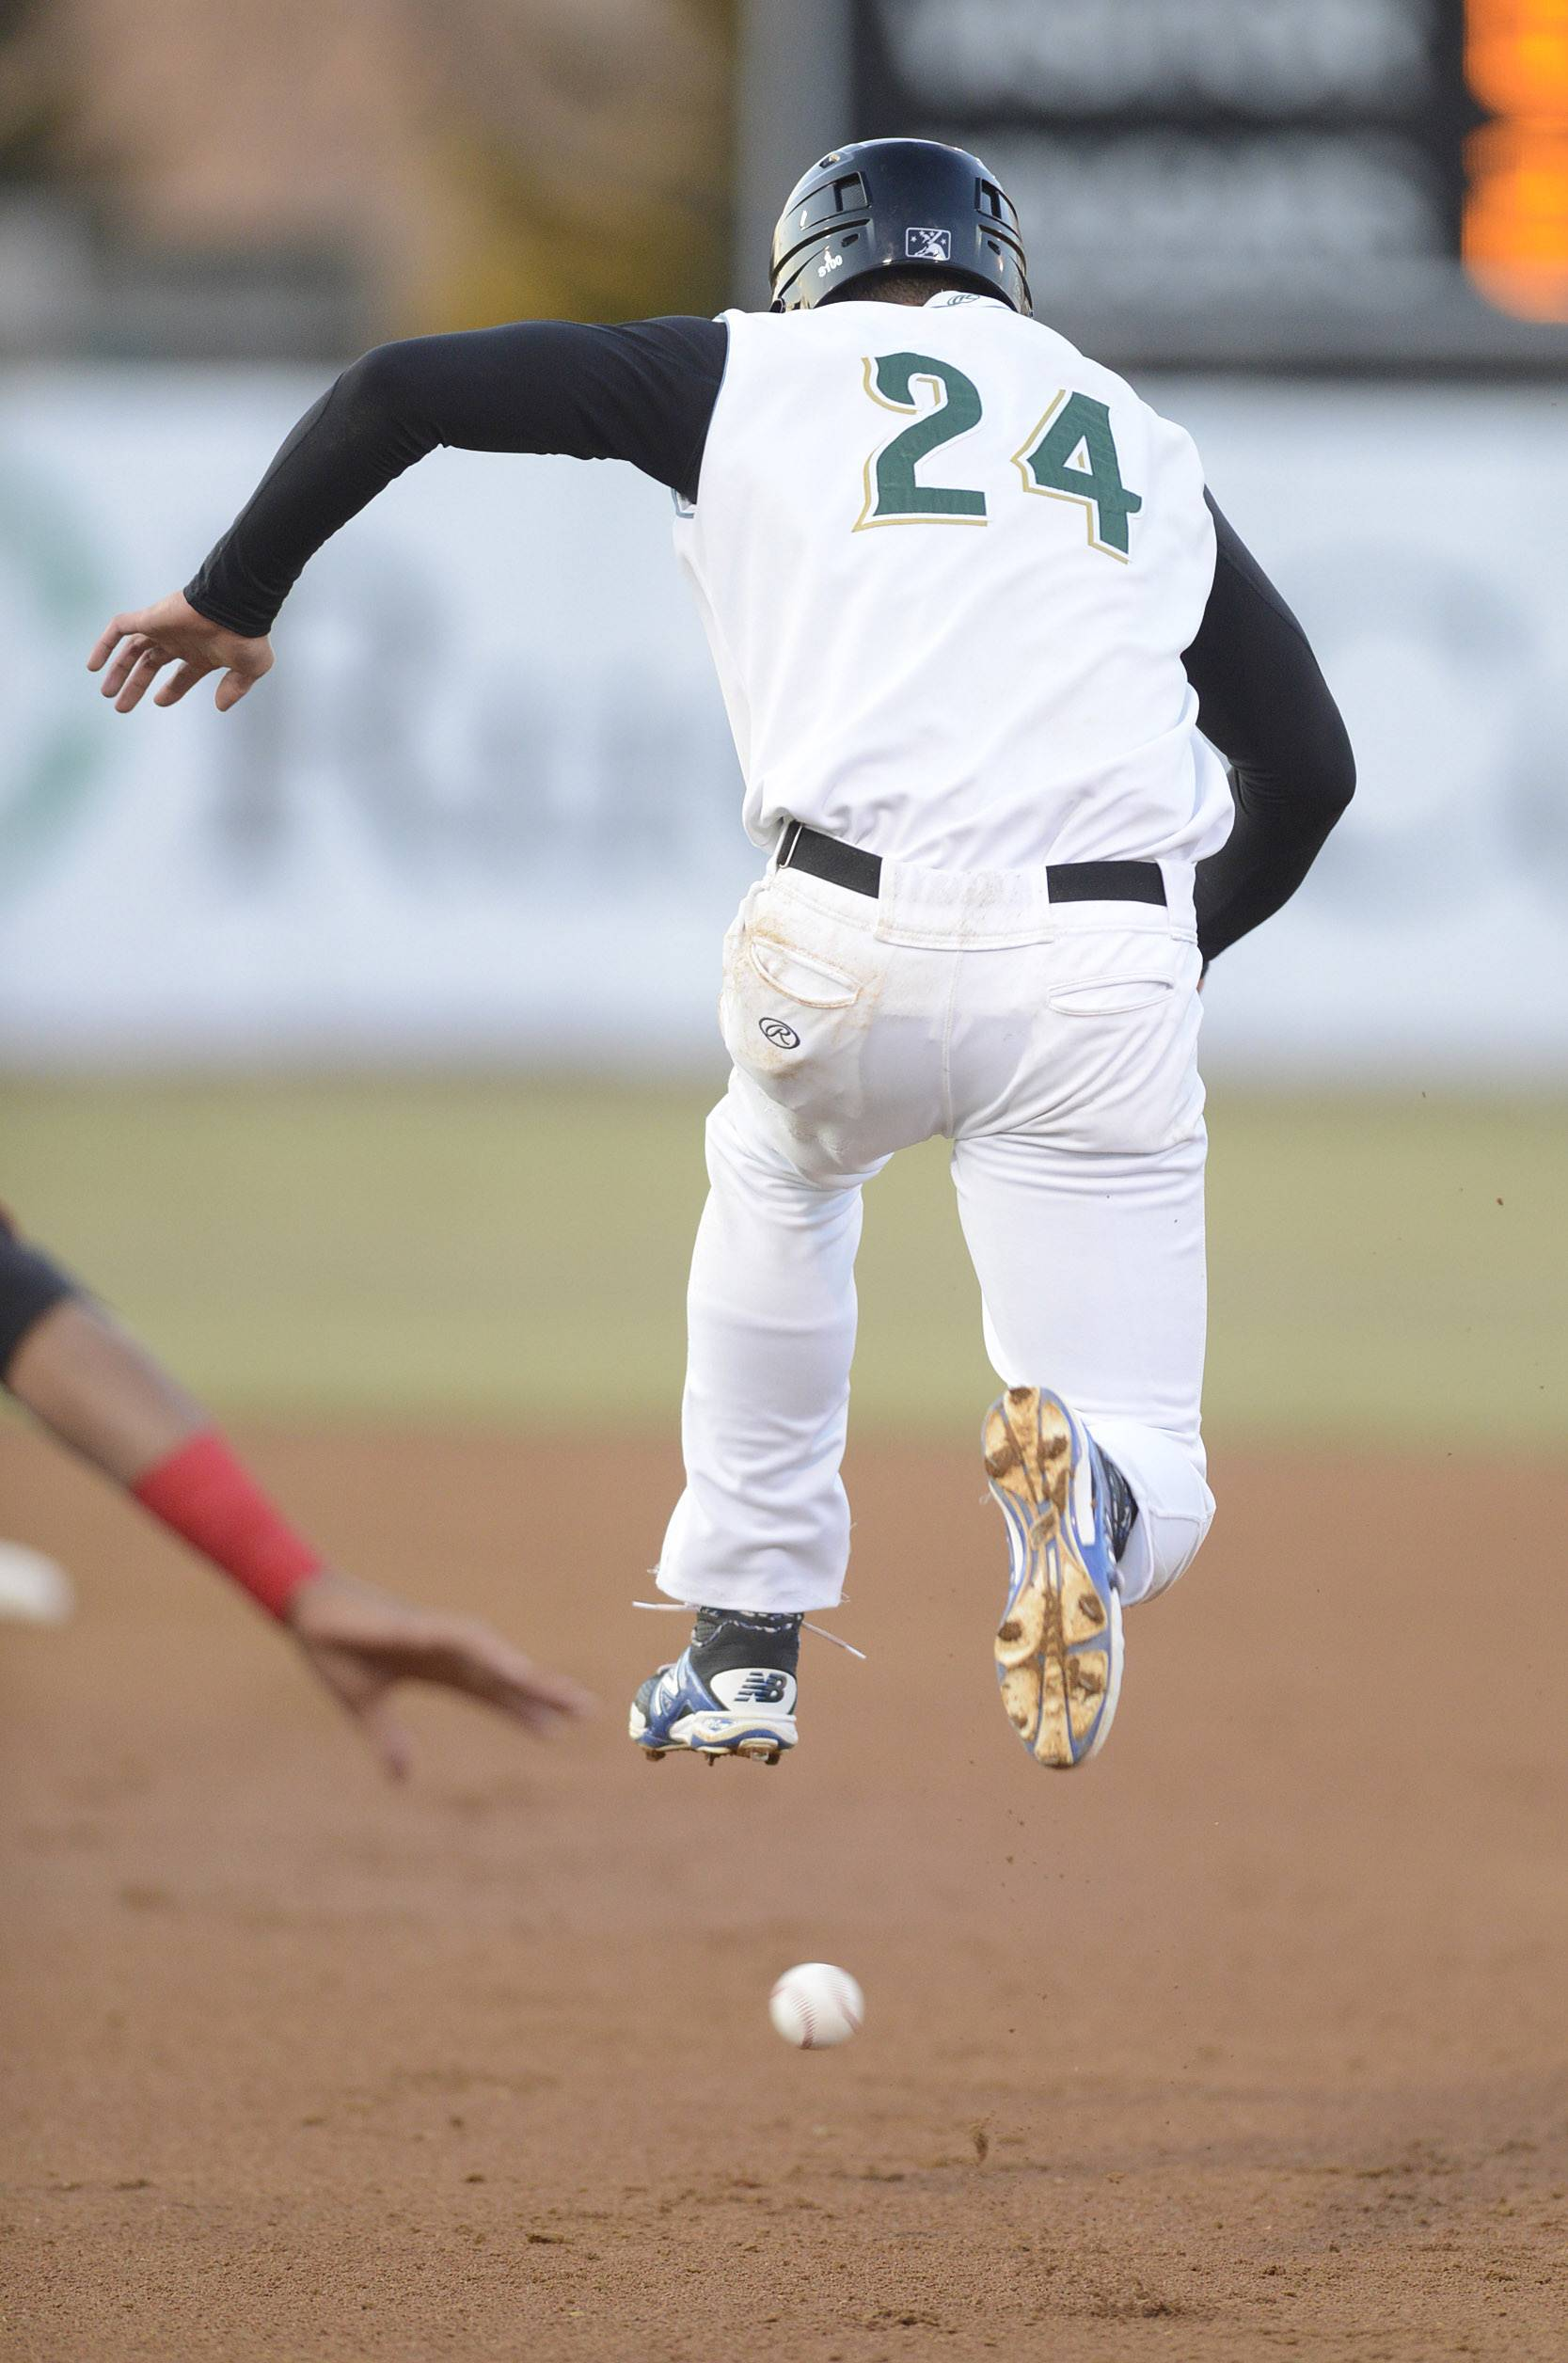 Jacob Rogers of the Kane County Cougars leaps over a ball as he heads to second base in the first inning.